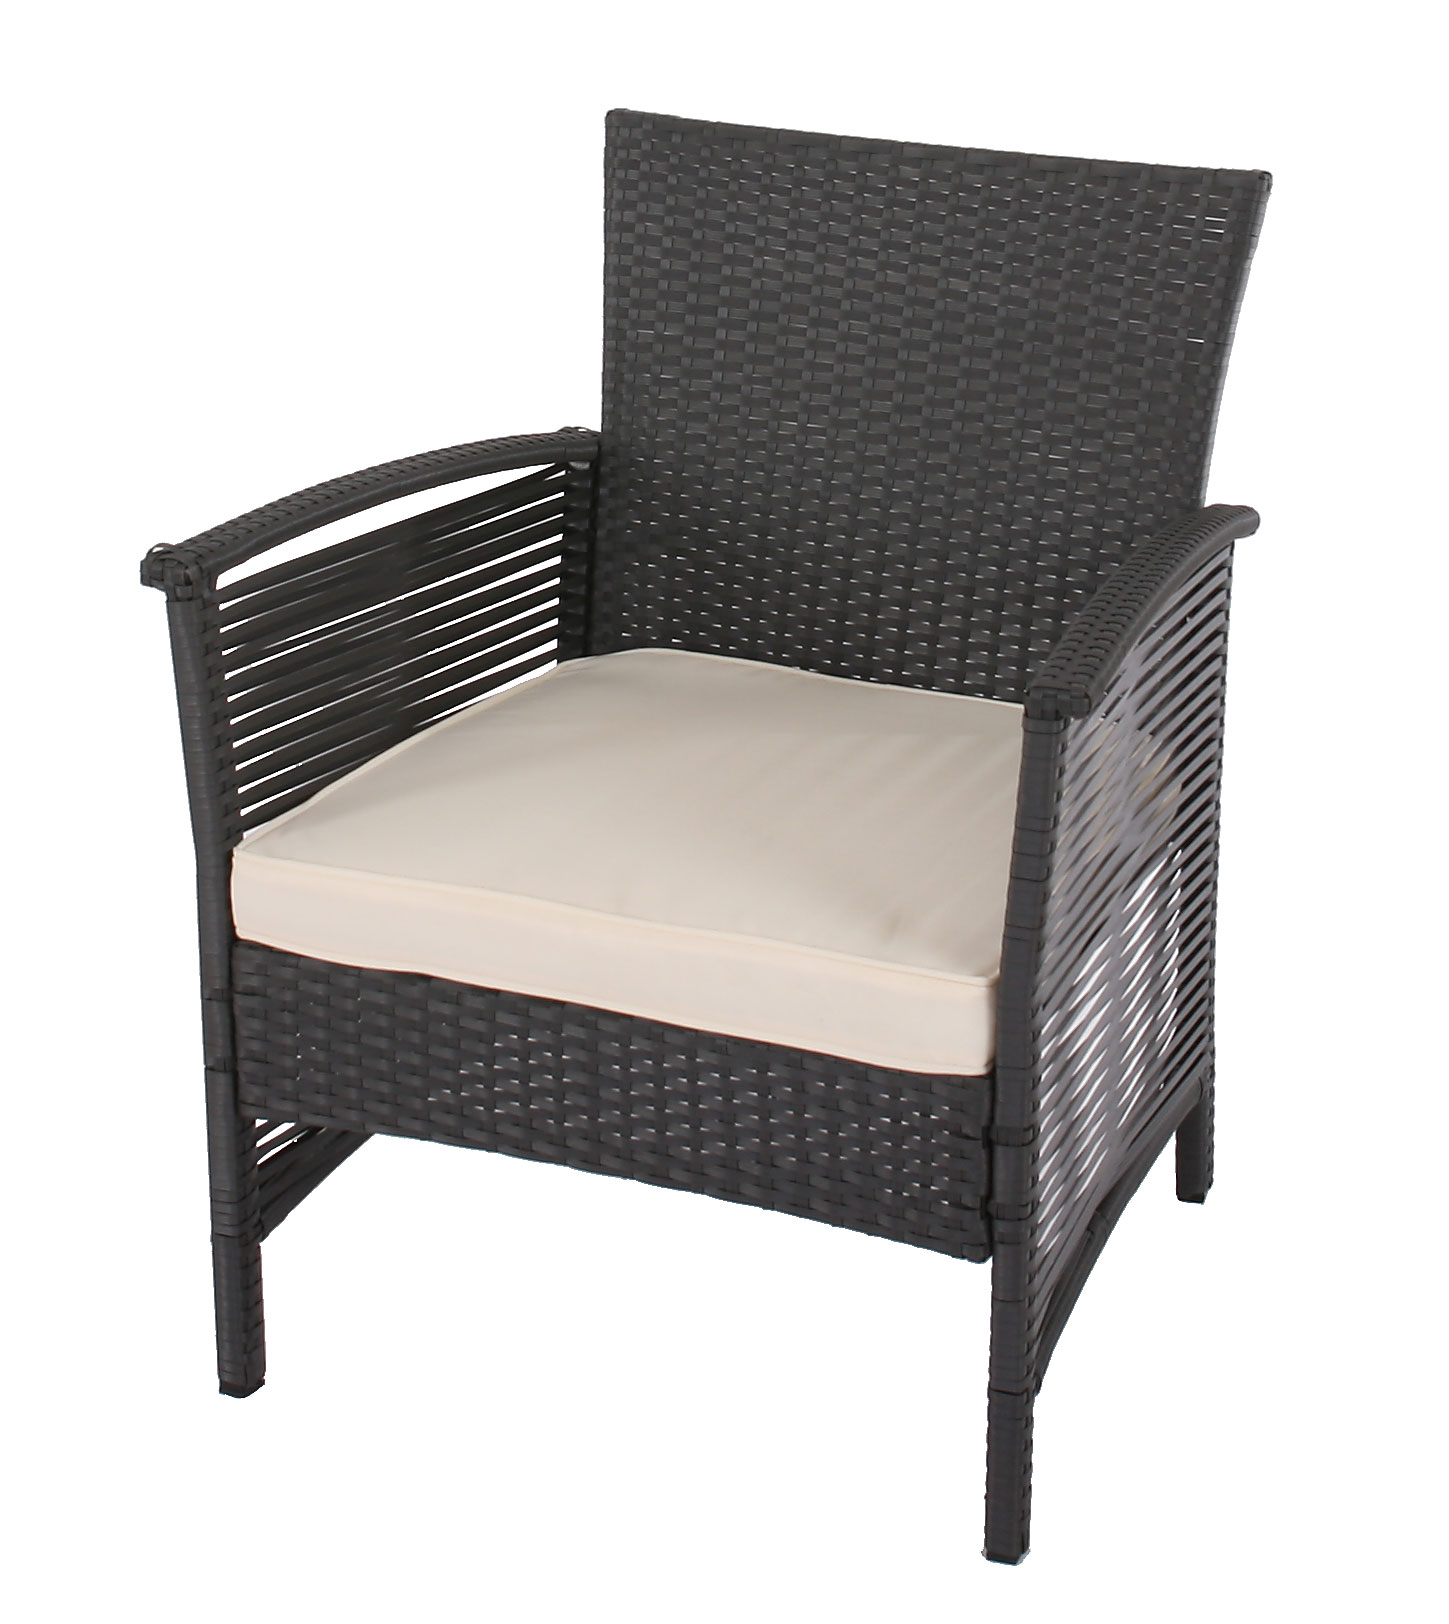 2 1 1 poly rattan garten garnitur ibarra sitzgruppe. Black Bedroom Furniture Sets. Home Design Ideas